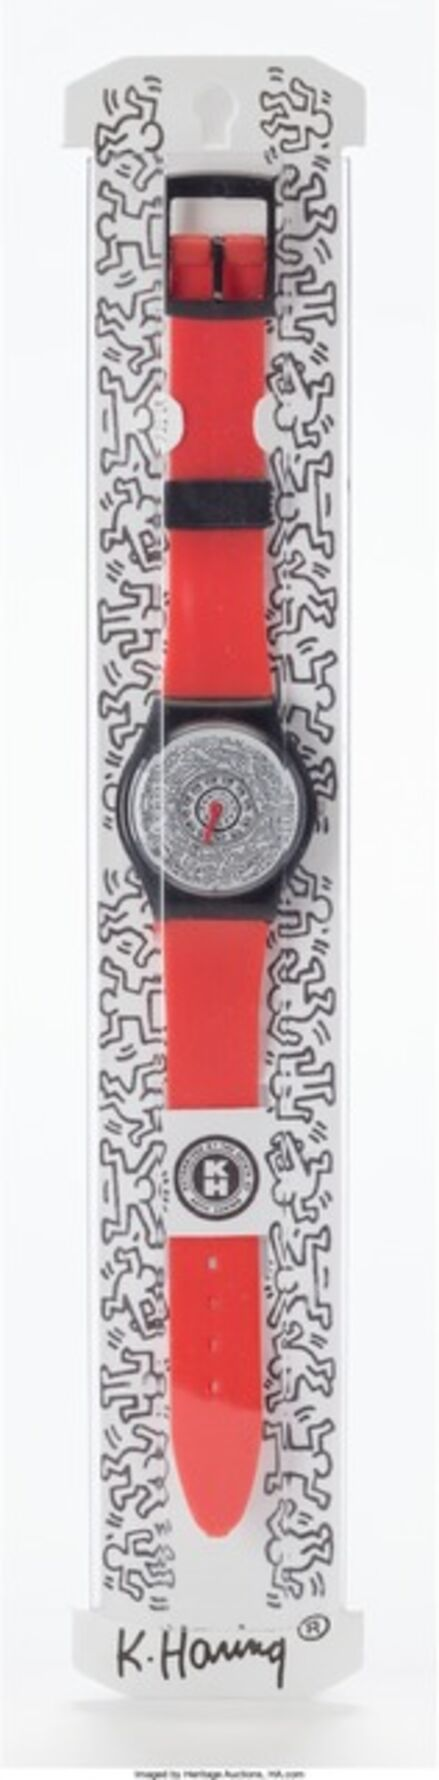 Keith Haring, 'Swatch'